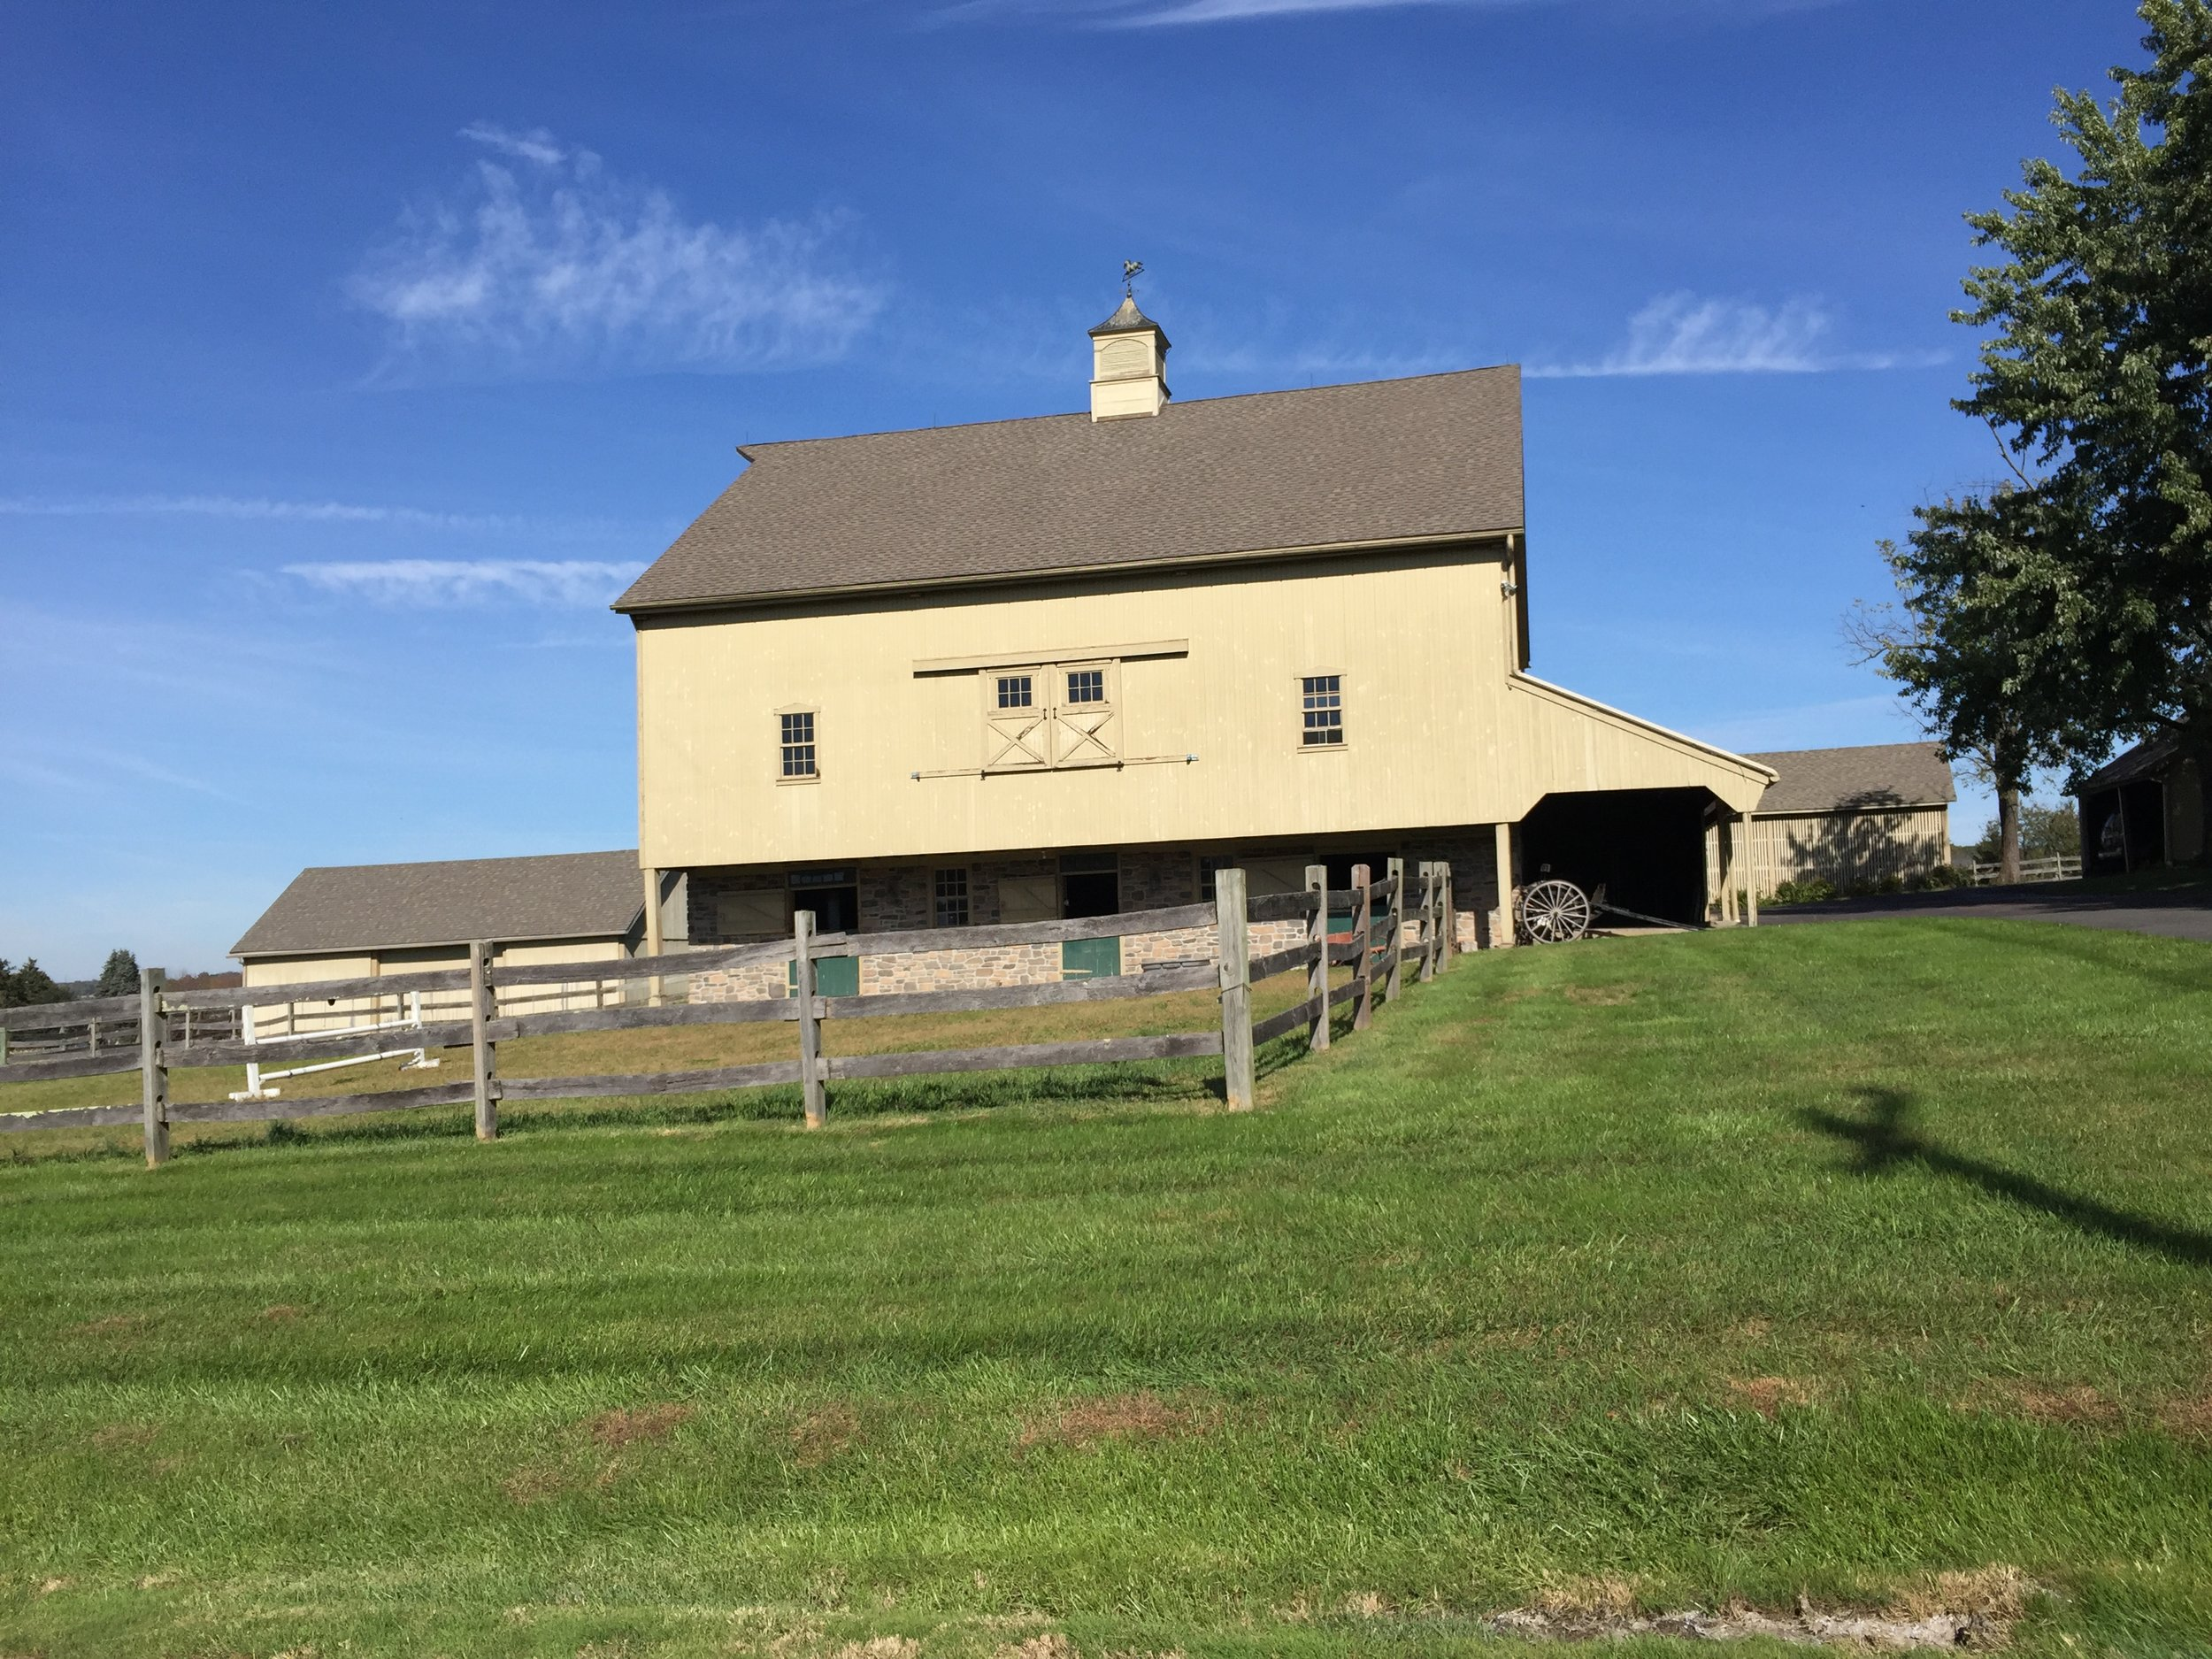 This impressive barn can be found just off of Landis Road outside of Harleysville, PA. It is near the ten-mile-to-go mark on the route.